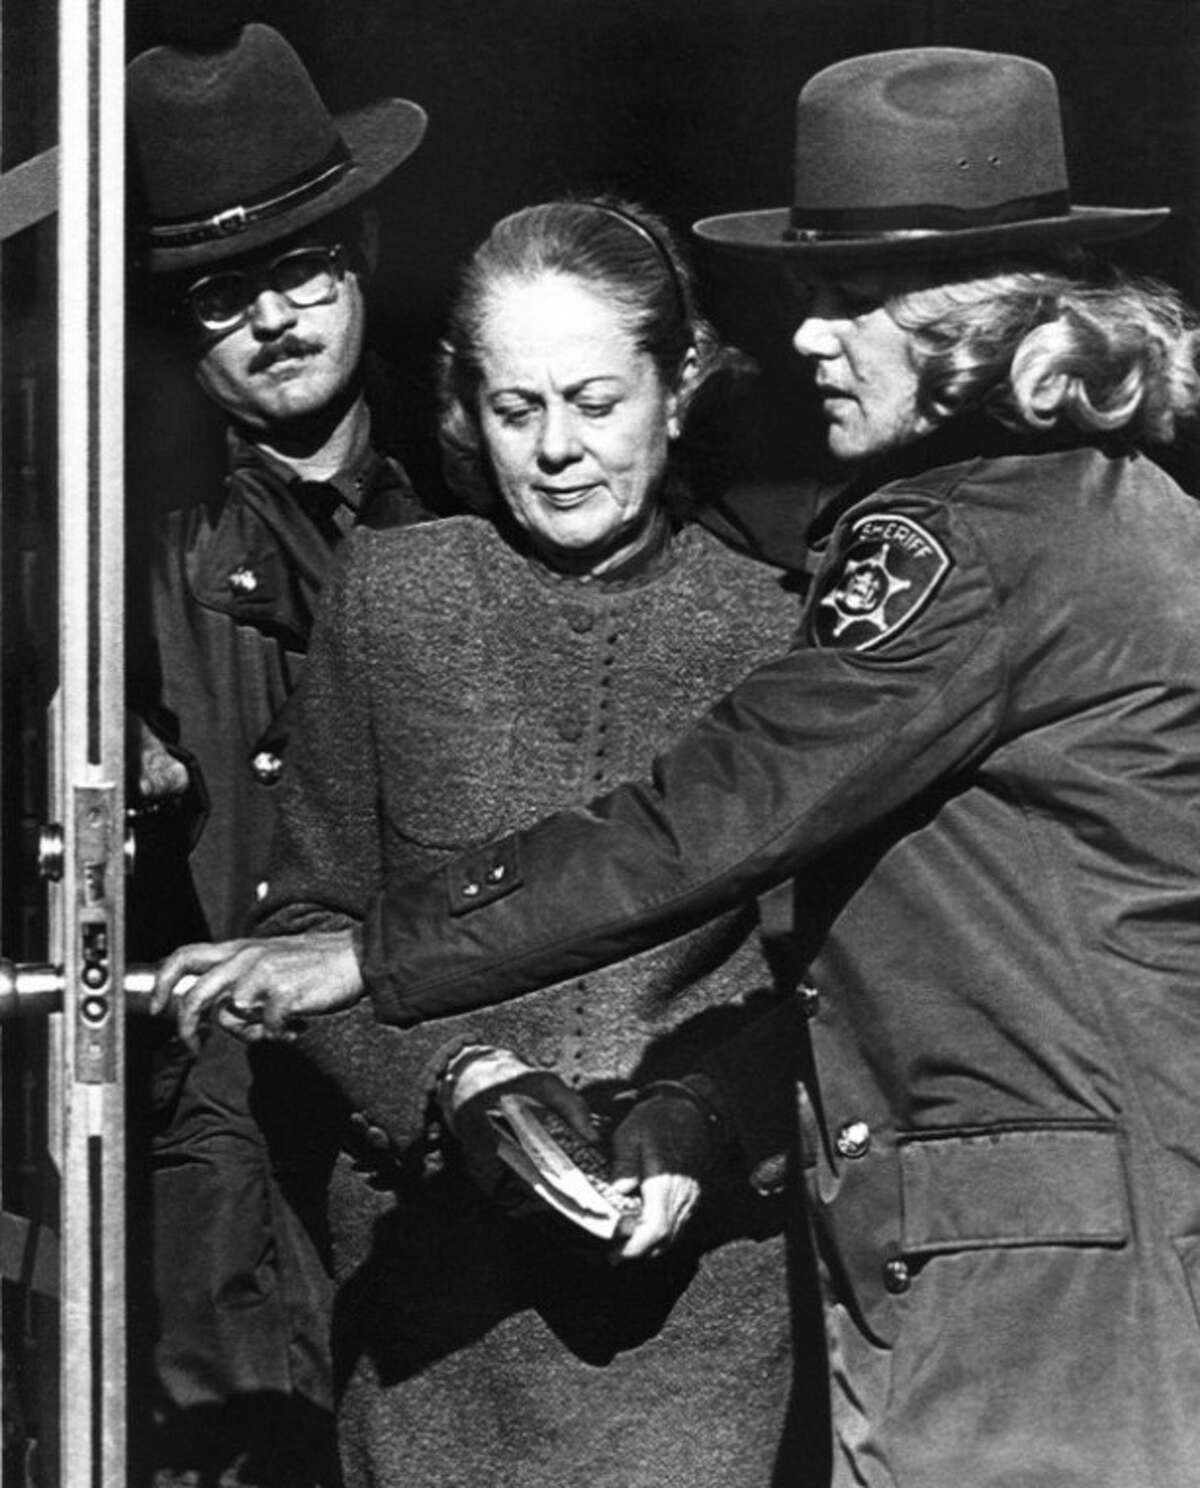 """FILE - In this March 20, 1981 file photo, Jean Harris, handcuffed and carrying a book, leaves the Westchester County Jail enroute to the Westchester County Courthouse in Valhalla, N.Y. Harris, the patrician girls' school headmistress who spent 12 years in prison for the 1980 killing of her longtime lover, """"Scarsdale Diet"""" doctor Herman Tarnower, in a case that rallied feminists and inspired television movies, died Sunday, Dec. 23, 2012, in New Haven, Conn. She was 89. (AP Photo/Ron Frehm, File)"""